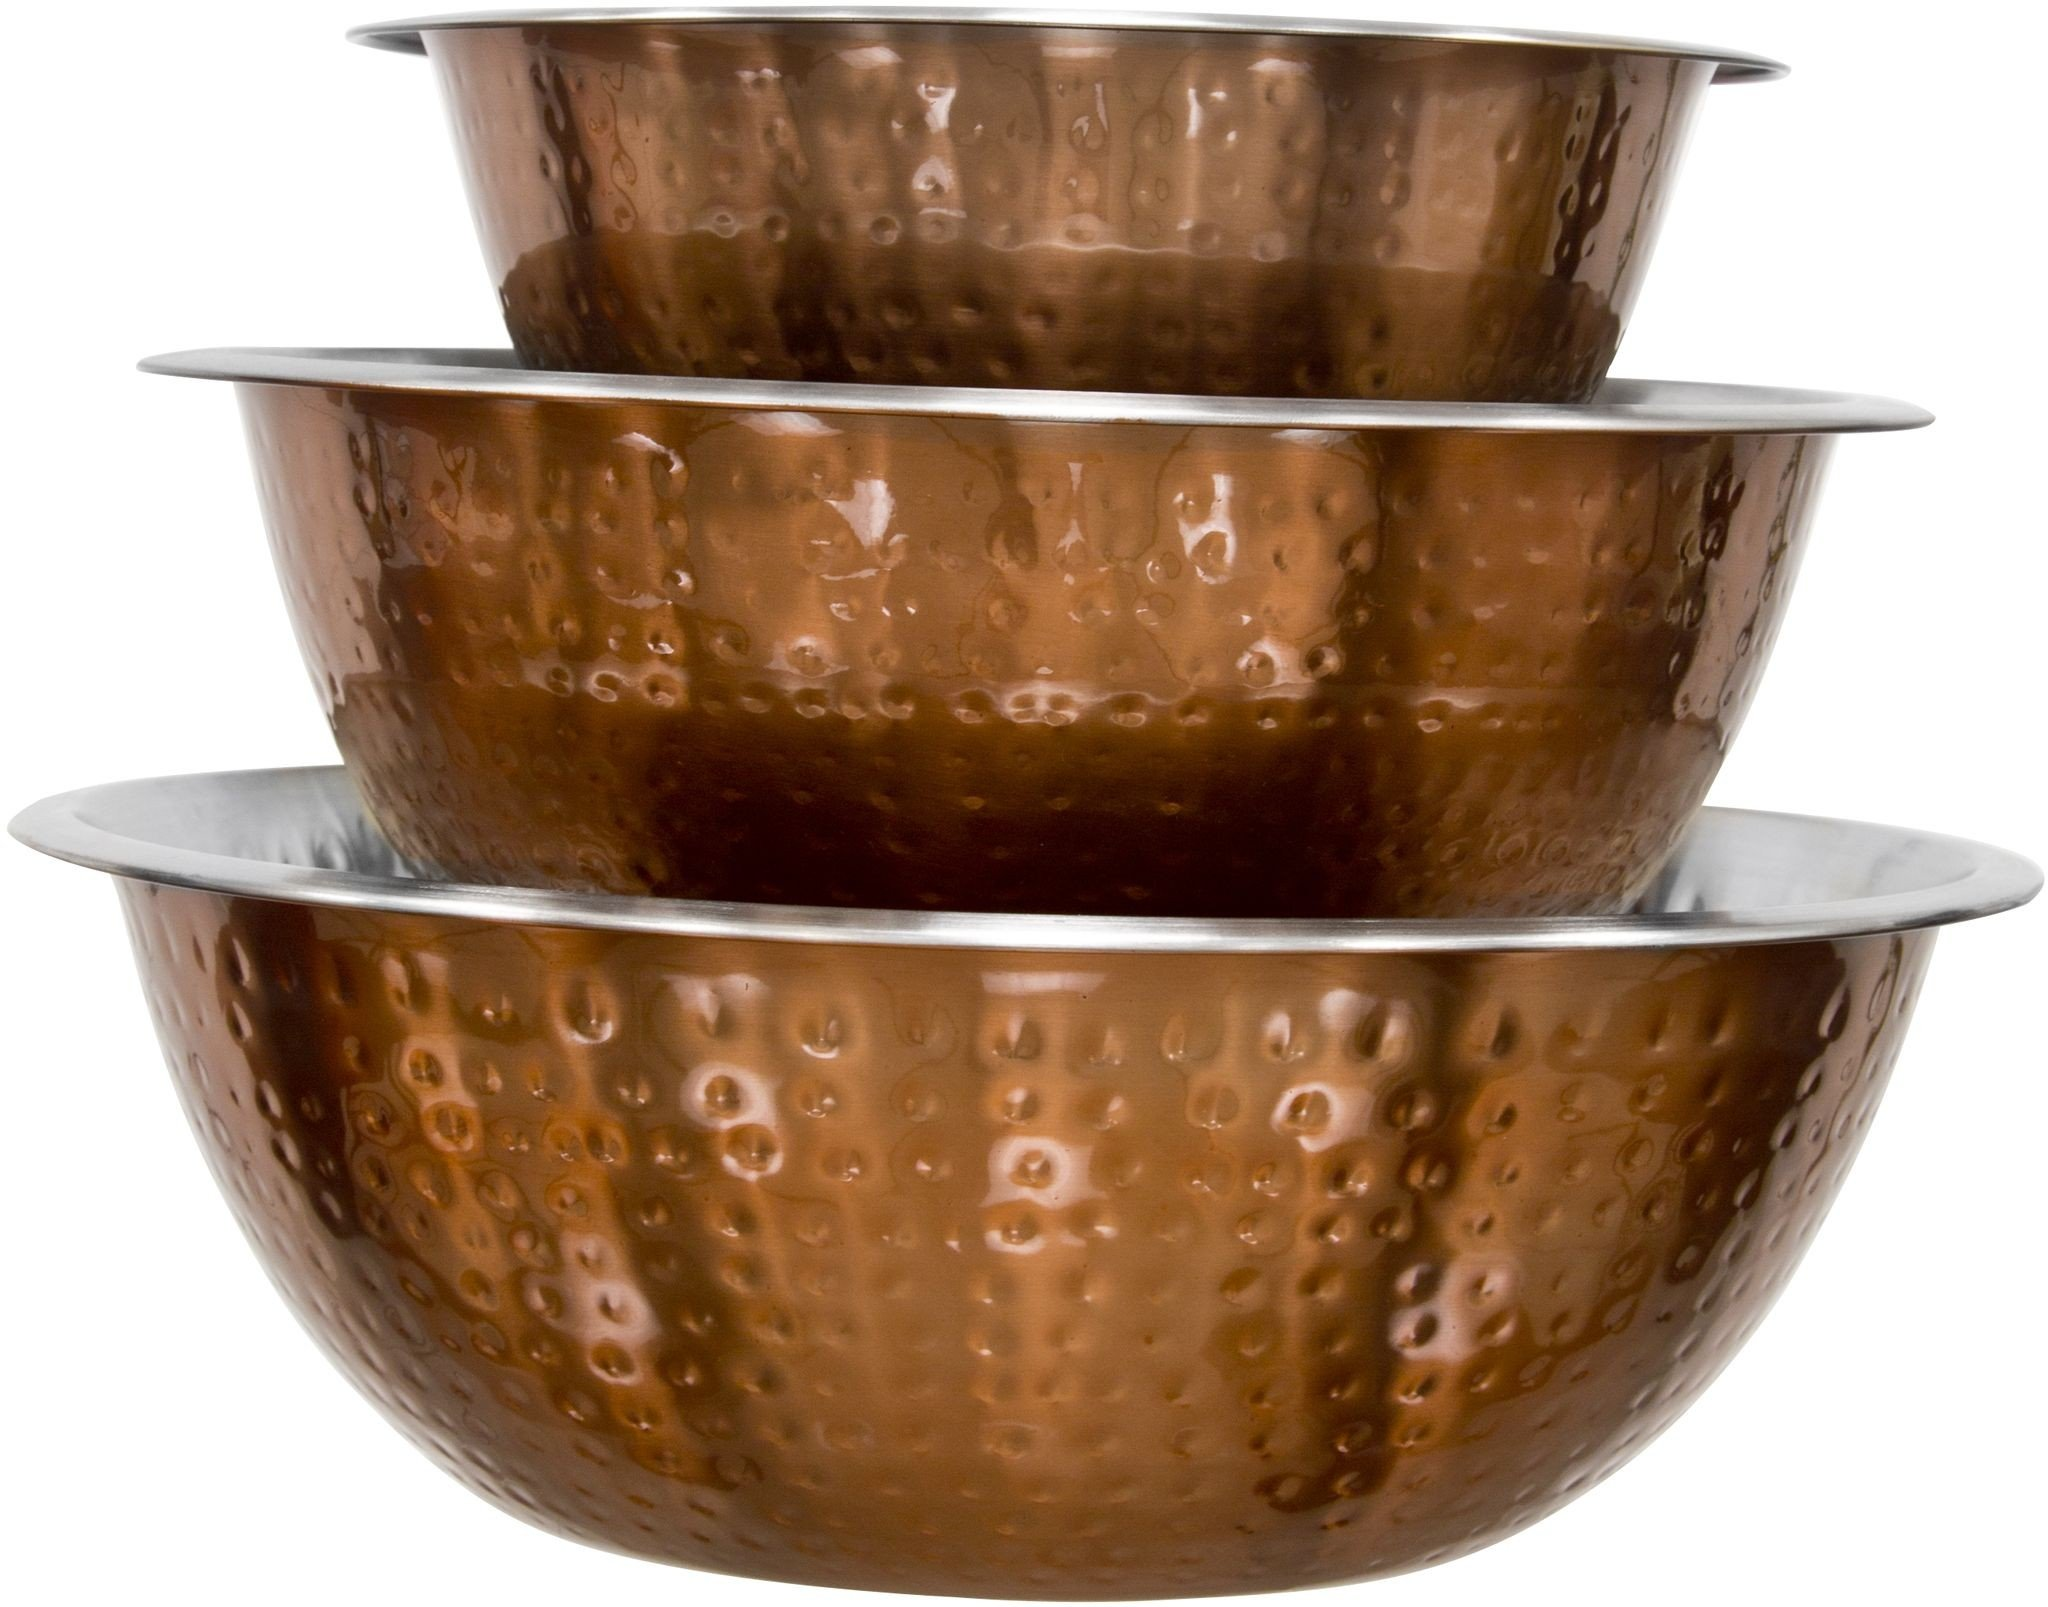 Set Of 3 Copper Hammered Mixing Bowls With Stainless Steel Interior Finish Nesting Bowls, Chef Cookware Set, by Le'raze (Image #5)